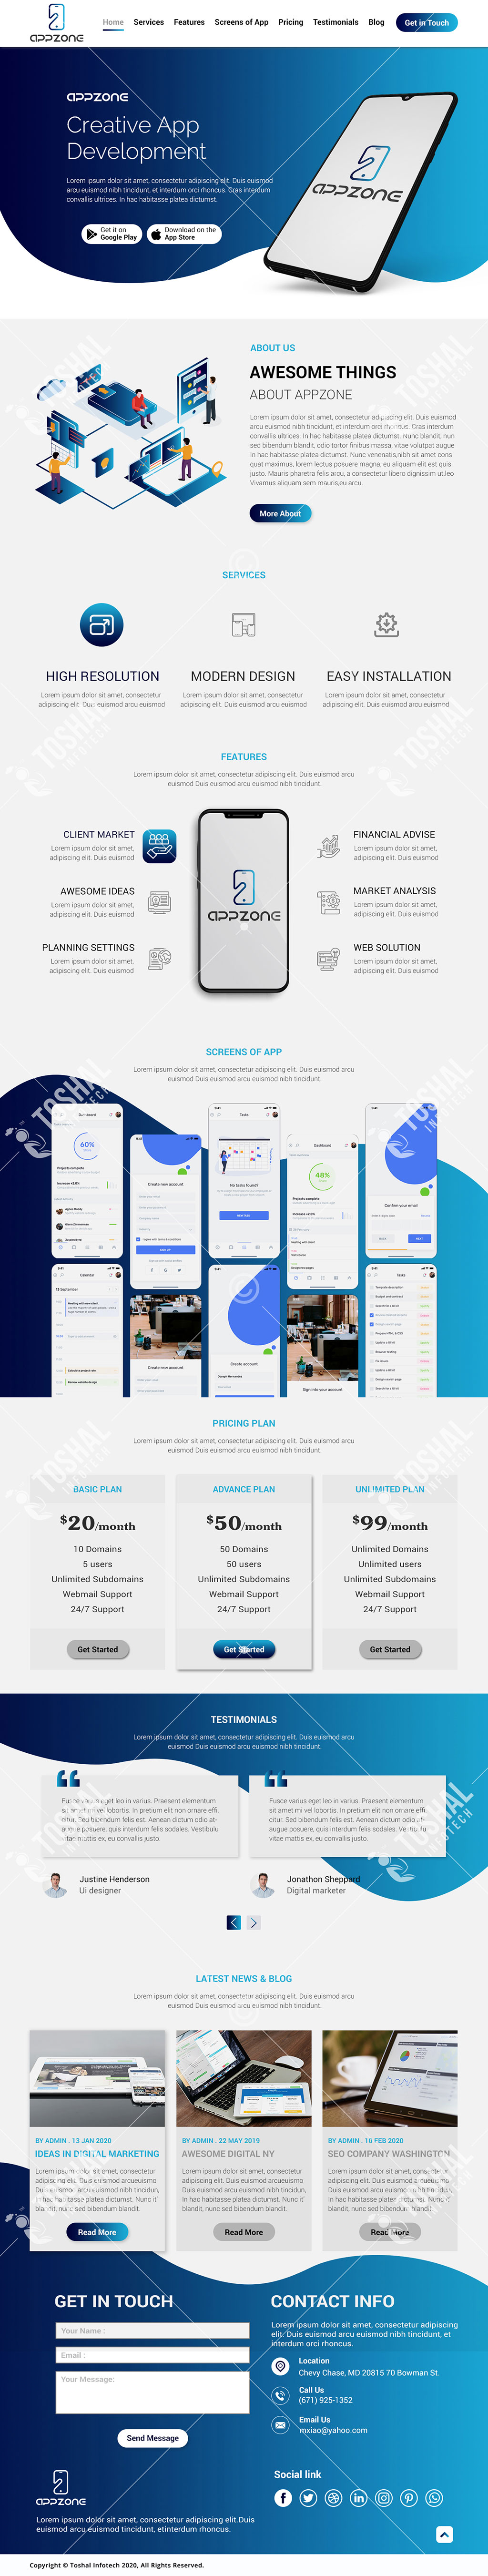 Creative App Development Theme Design